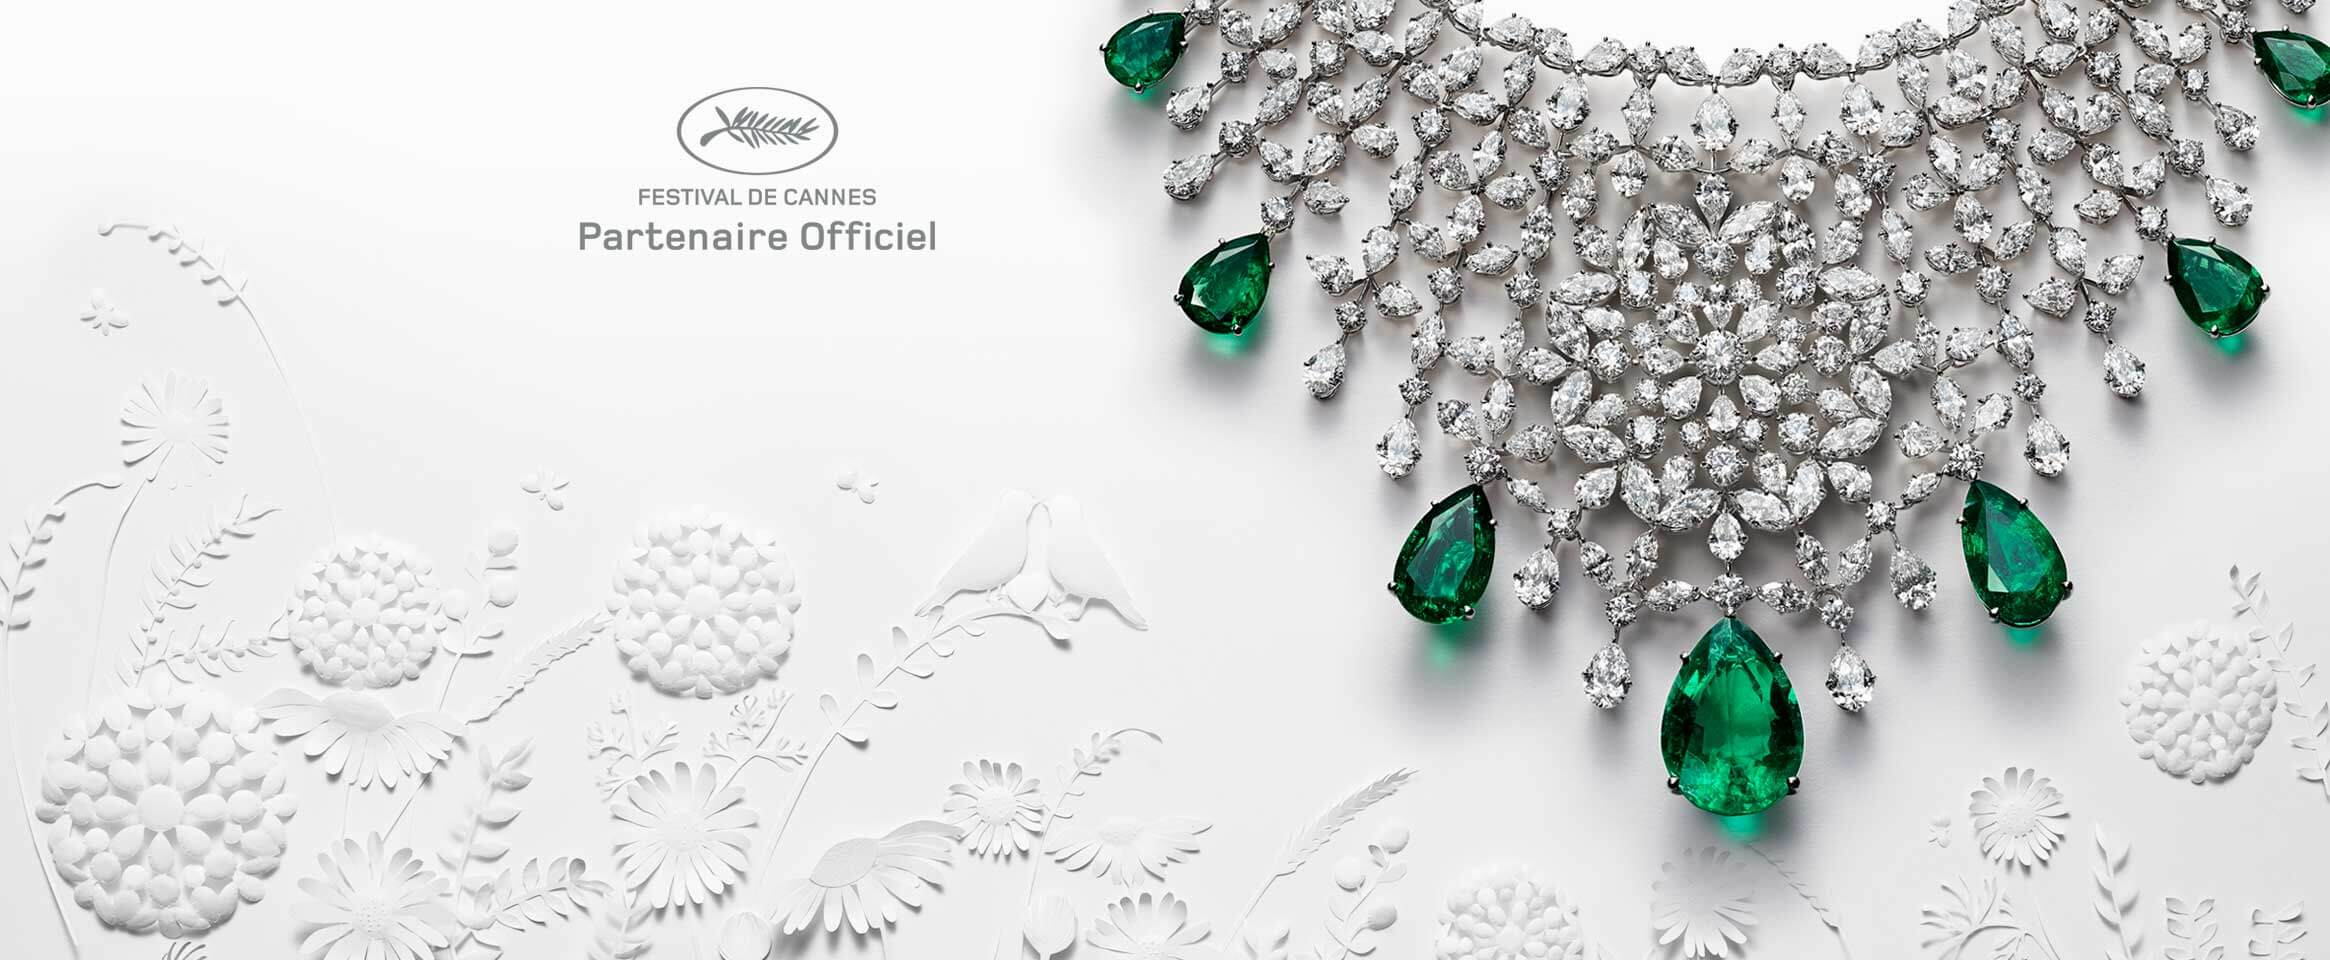 <b>CHOPARD, </br> PARTNER UFFICIALE DEL </br> FESTIVAL DEL CINEMA</br>DI CANNES </b>